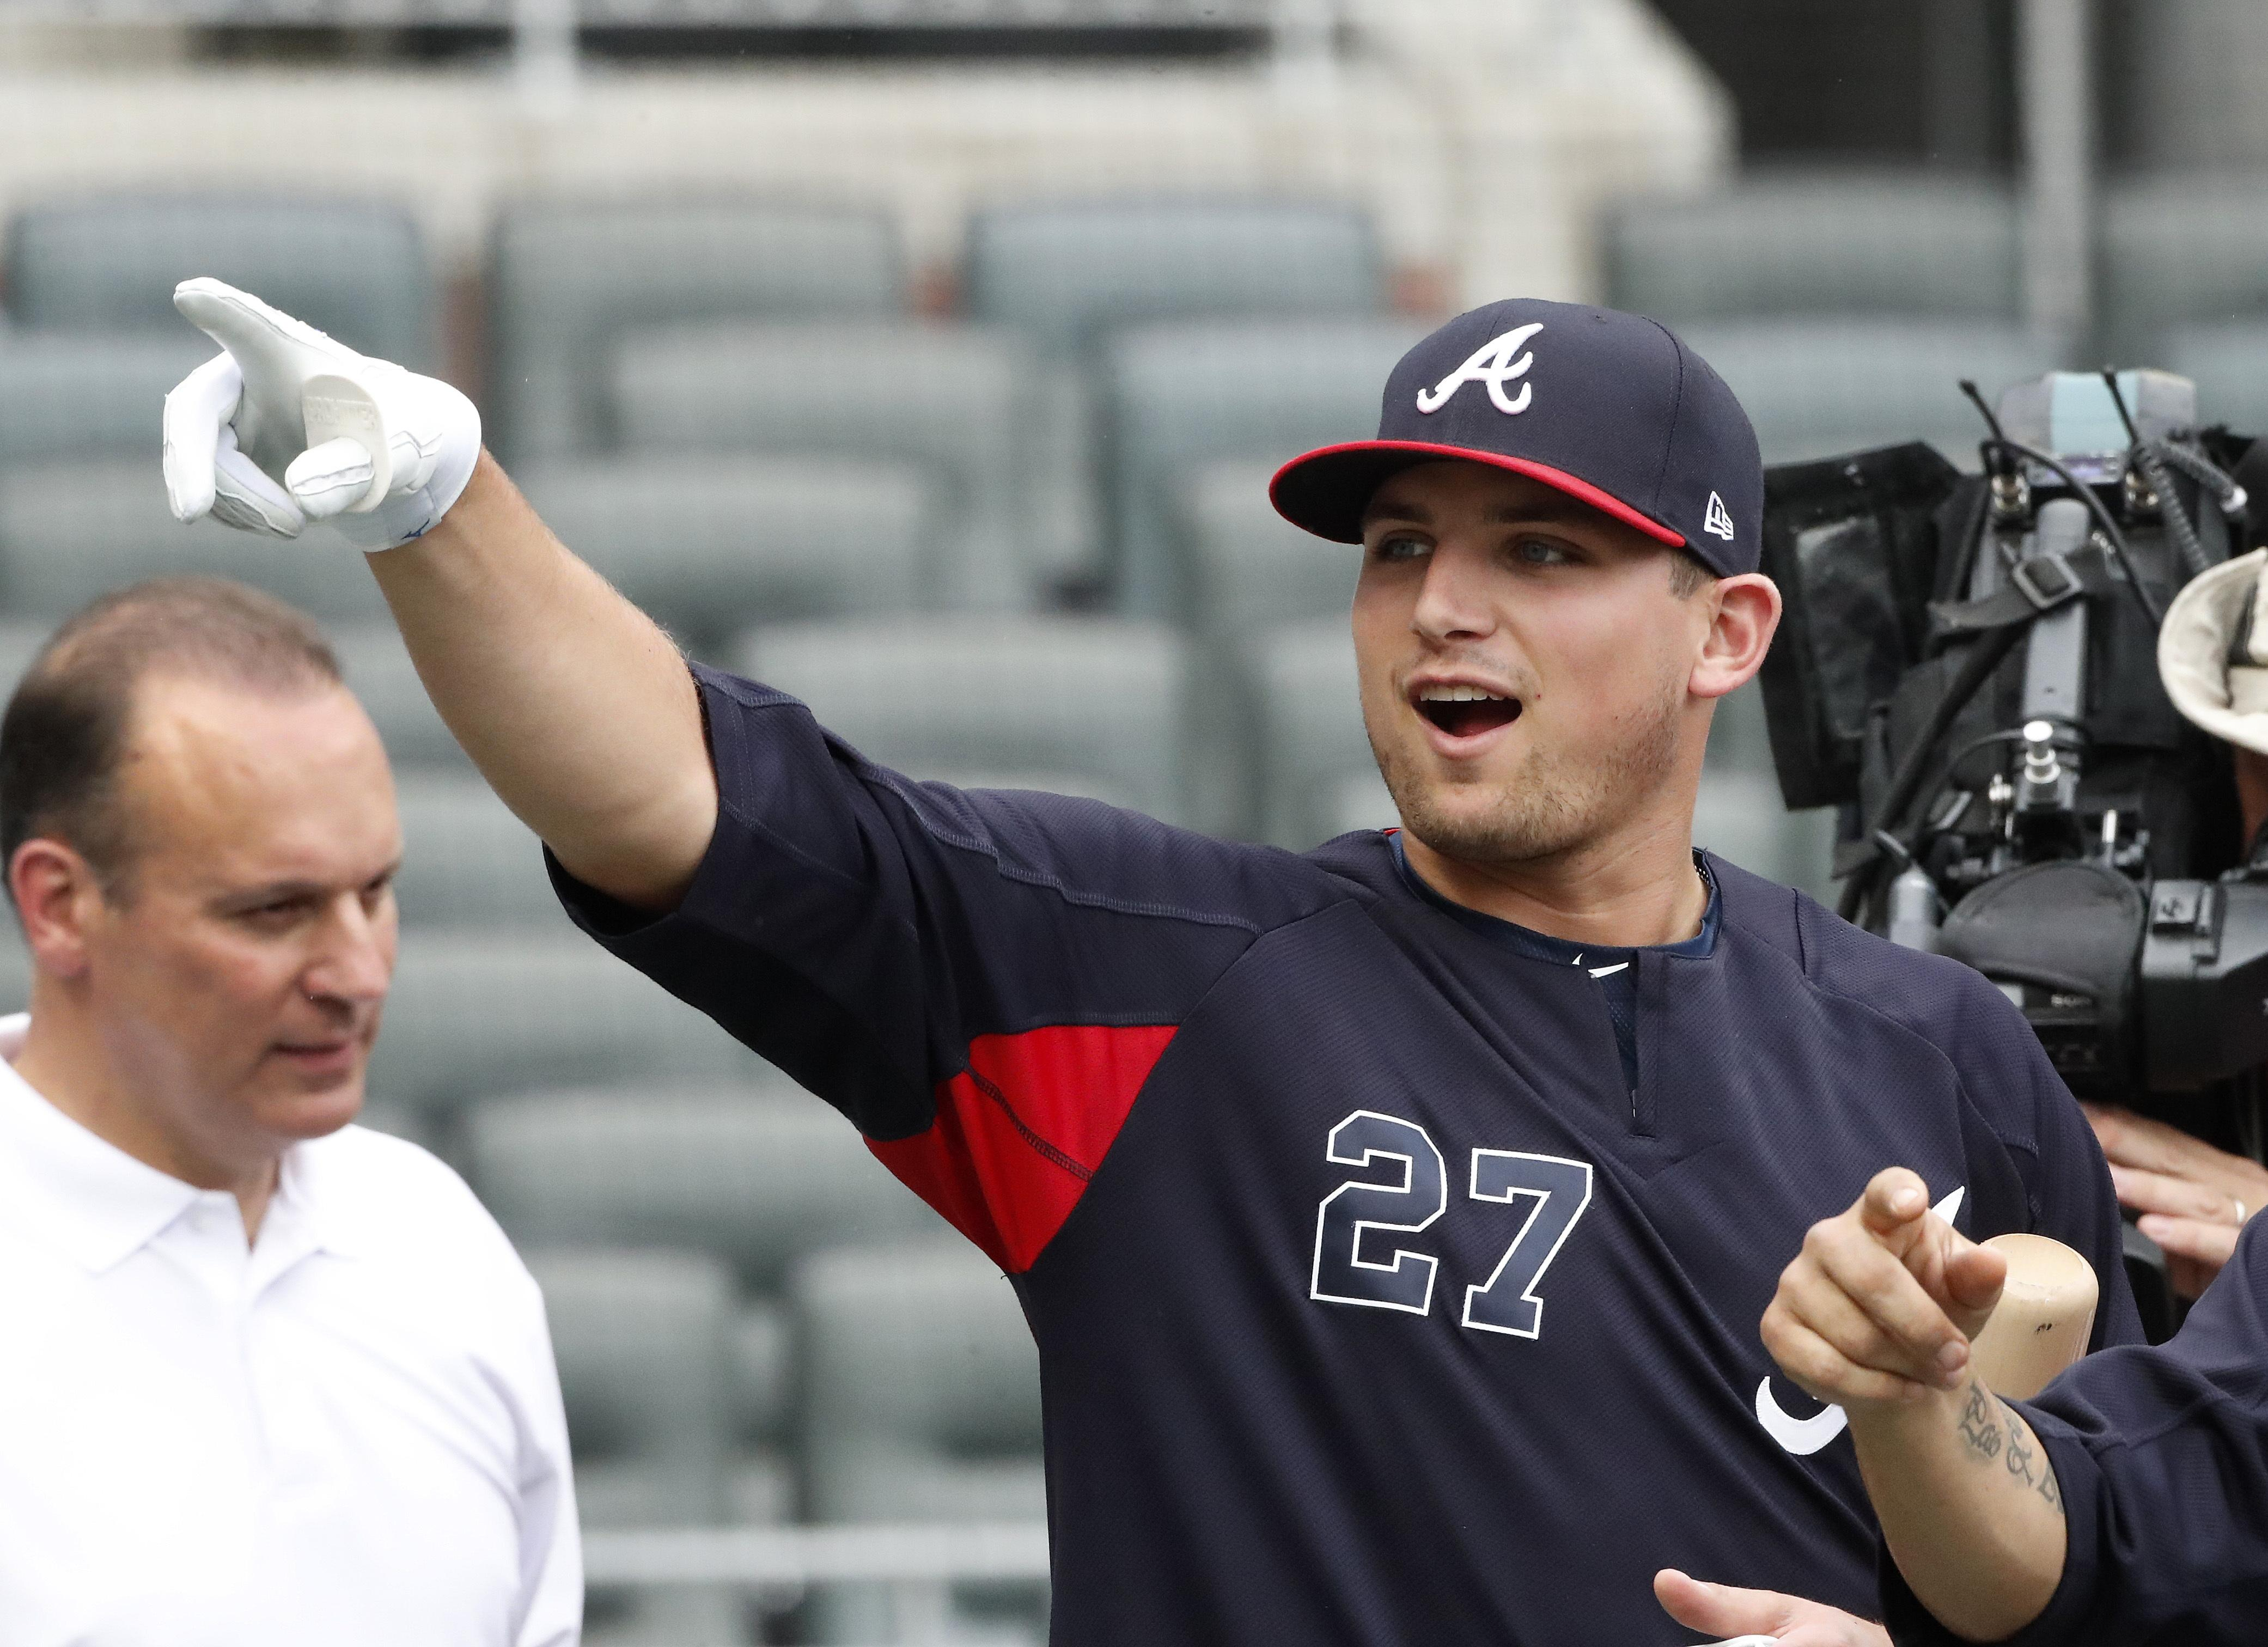 new style 373aa 0c698 Braves' Austin Riley homers in first big league game | SWX ...